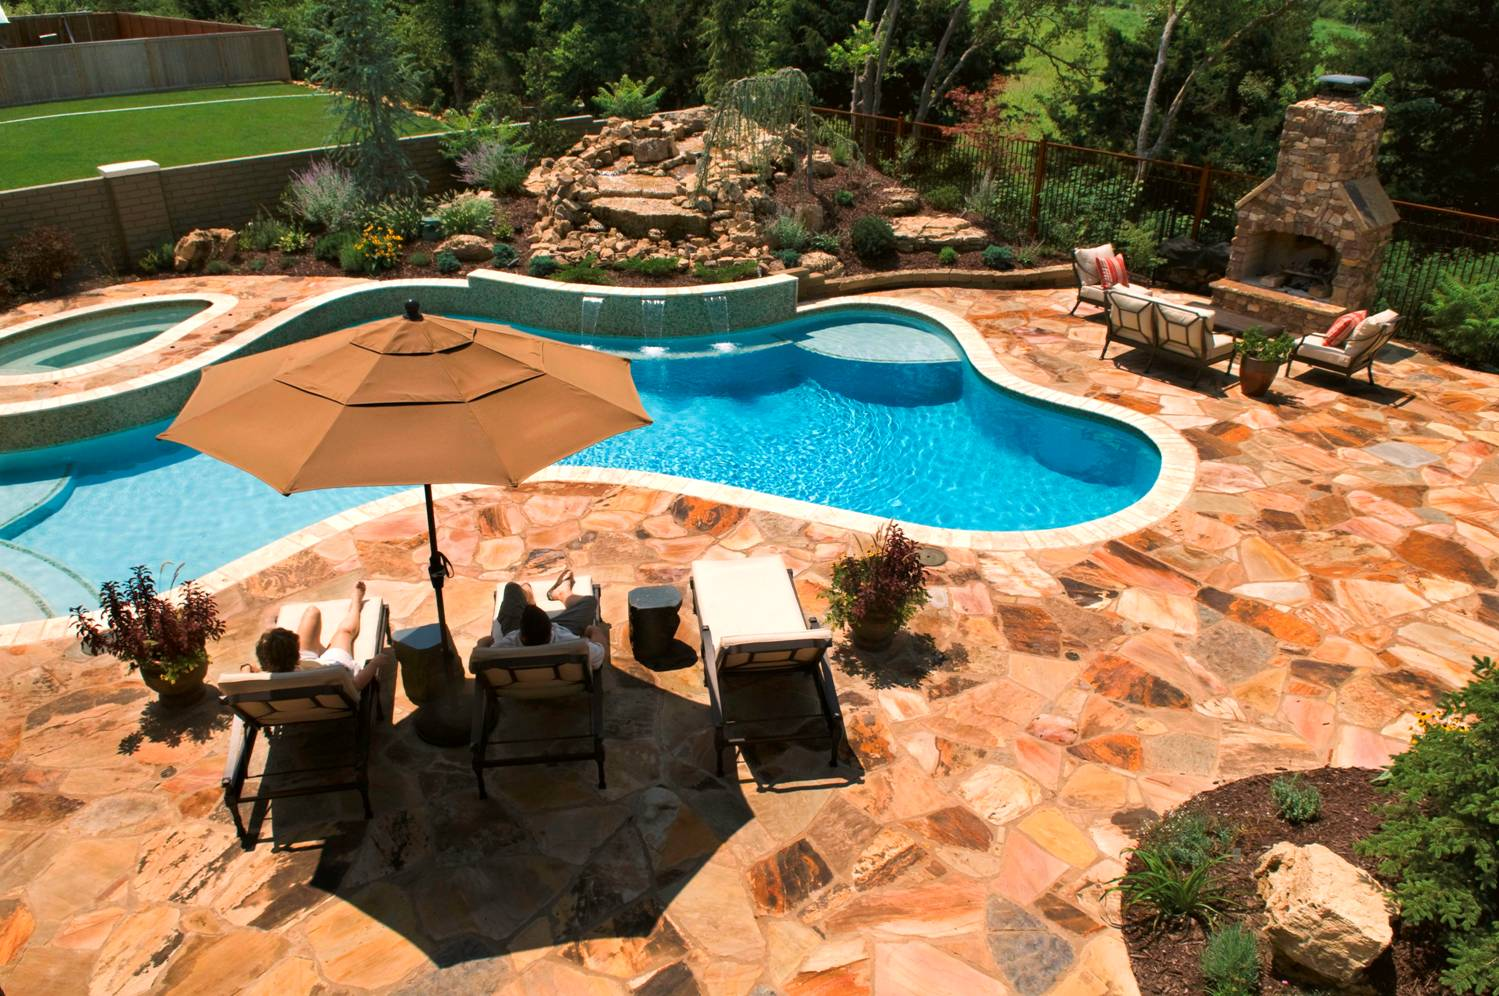 Pool Deck Ideas Made From Concrete